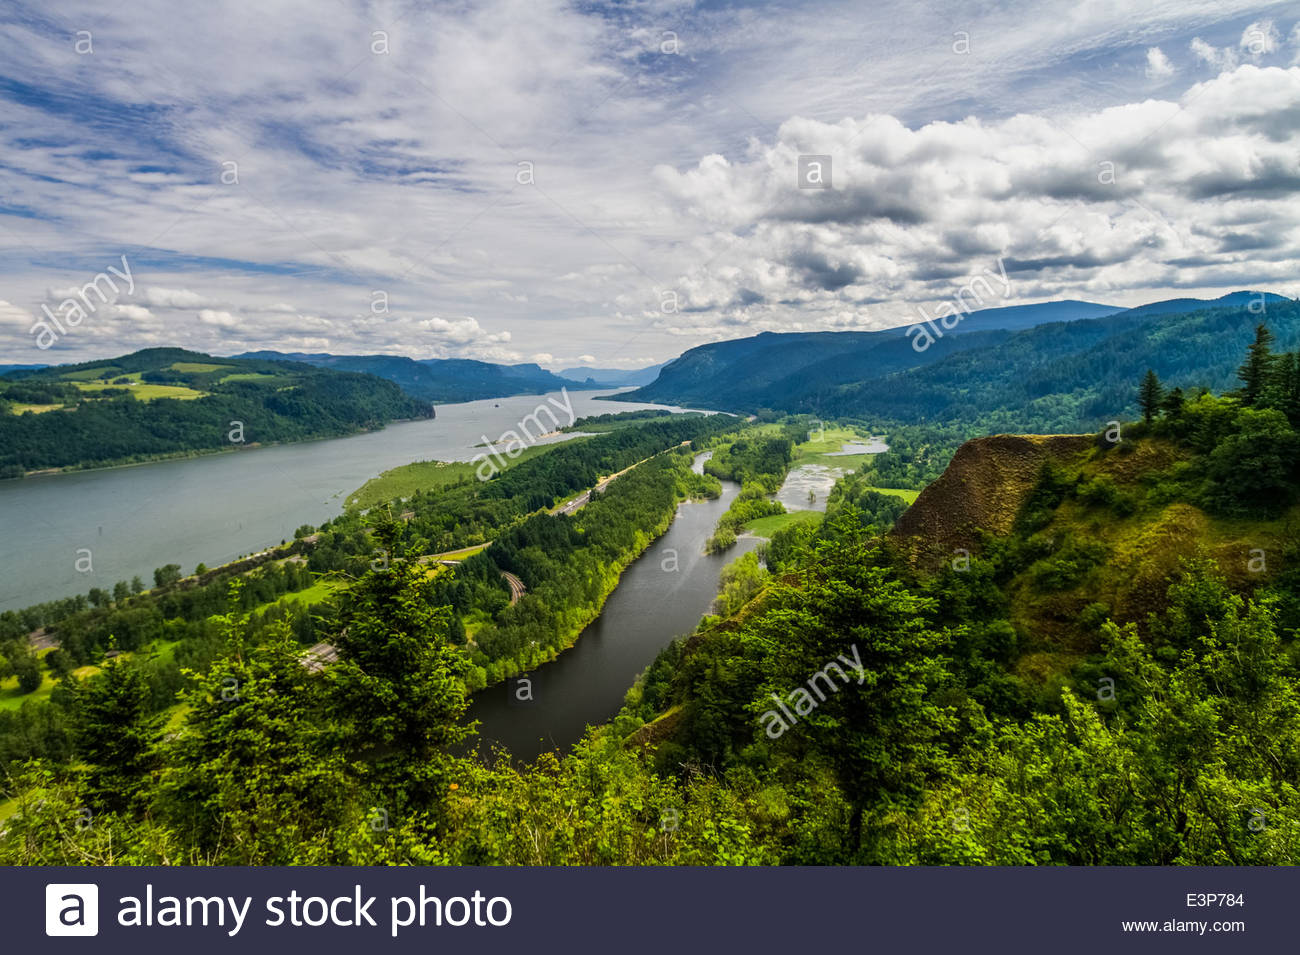 The Columbia River As Seen From Vista House, Oregon, USA, North America - Stock Image